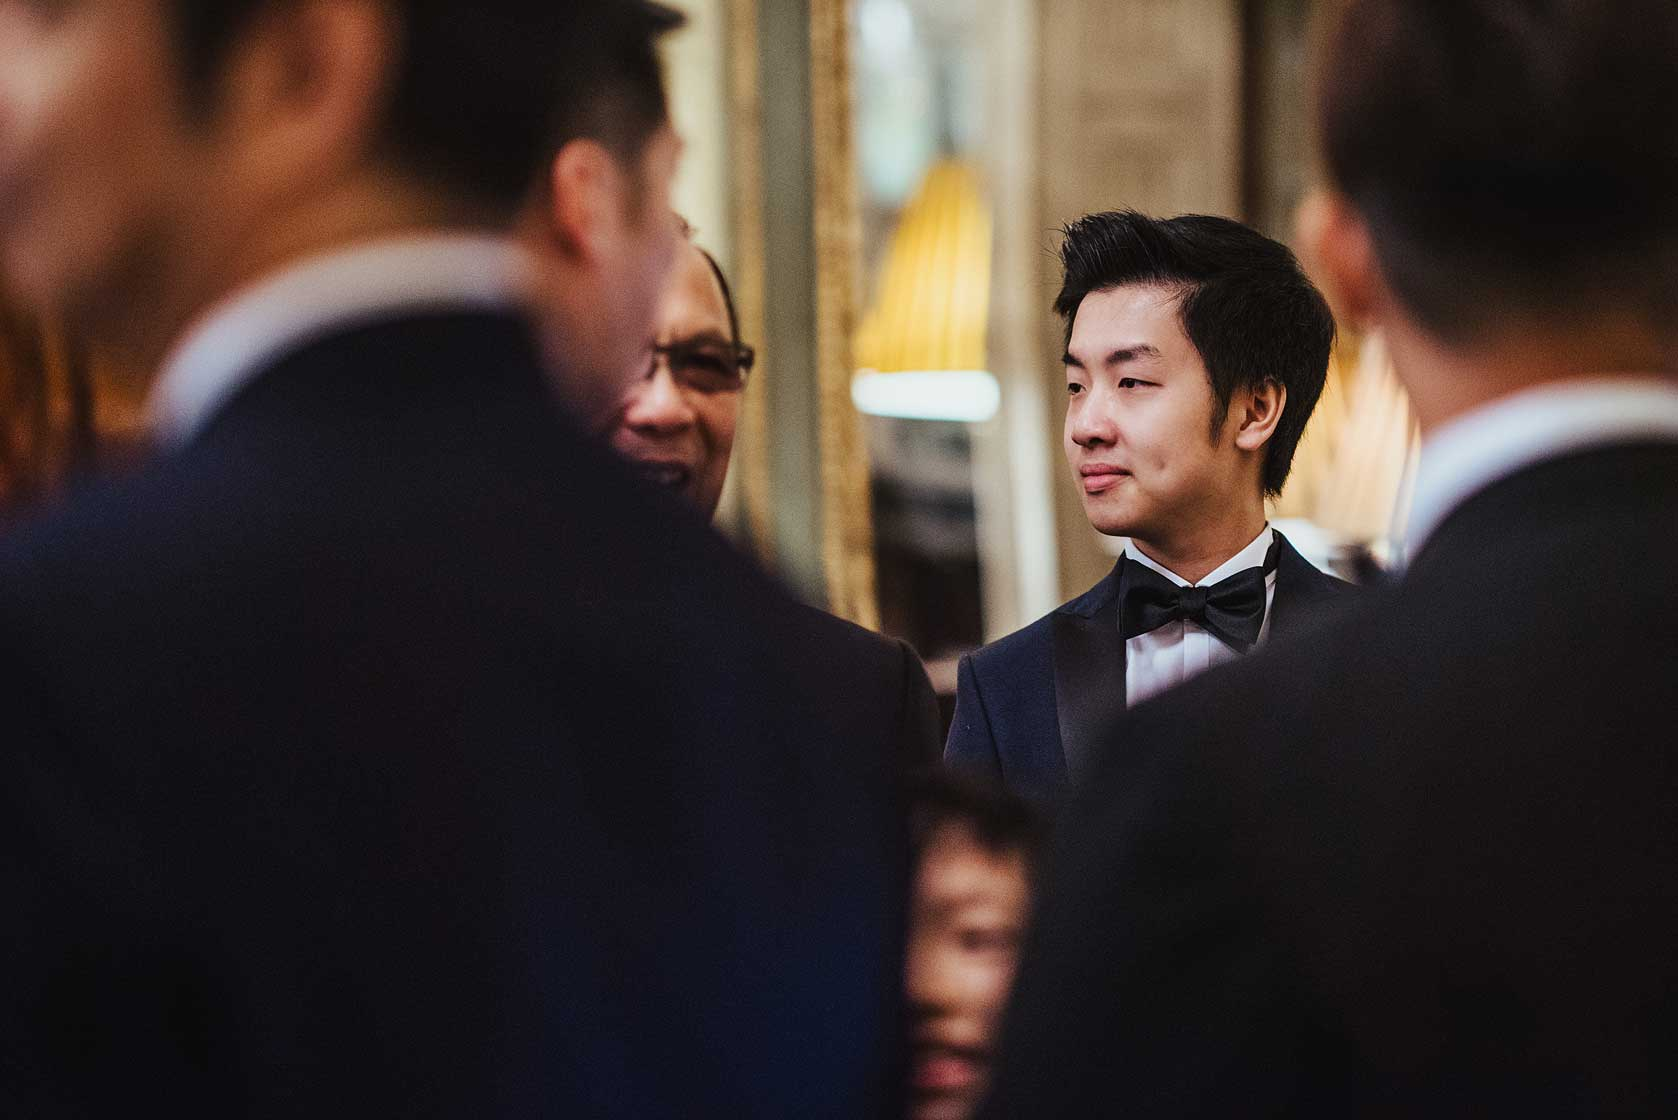 Smart wedding guest in black tie